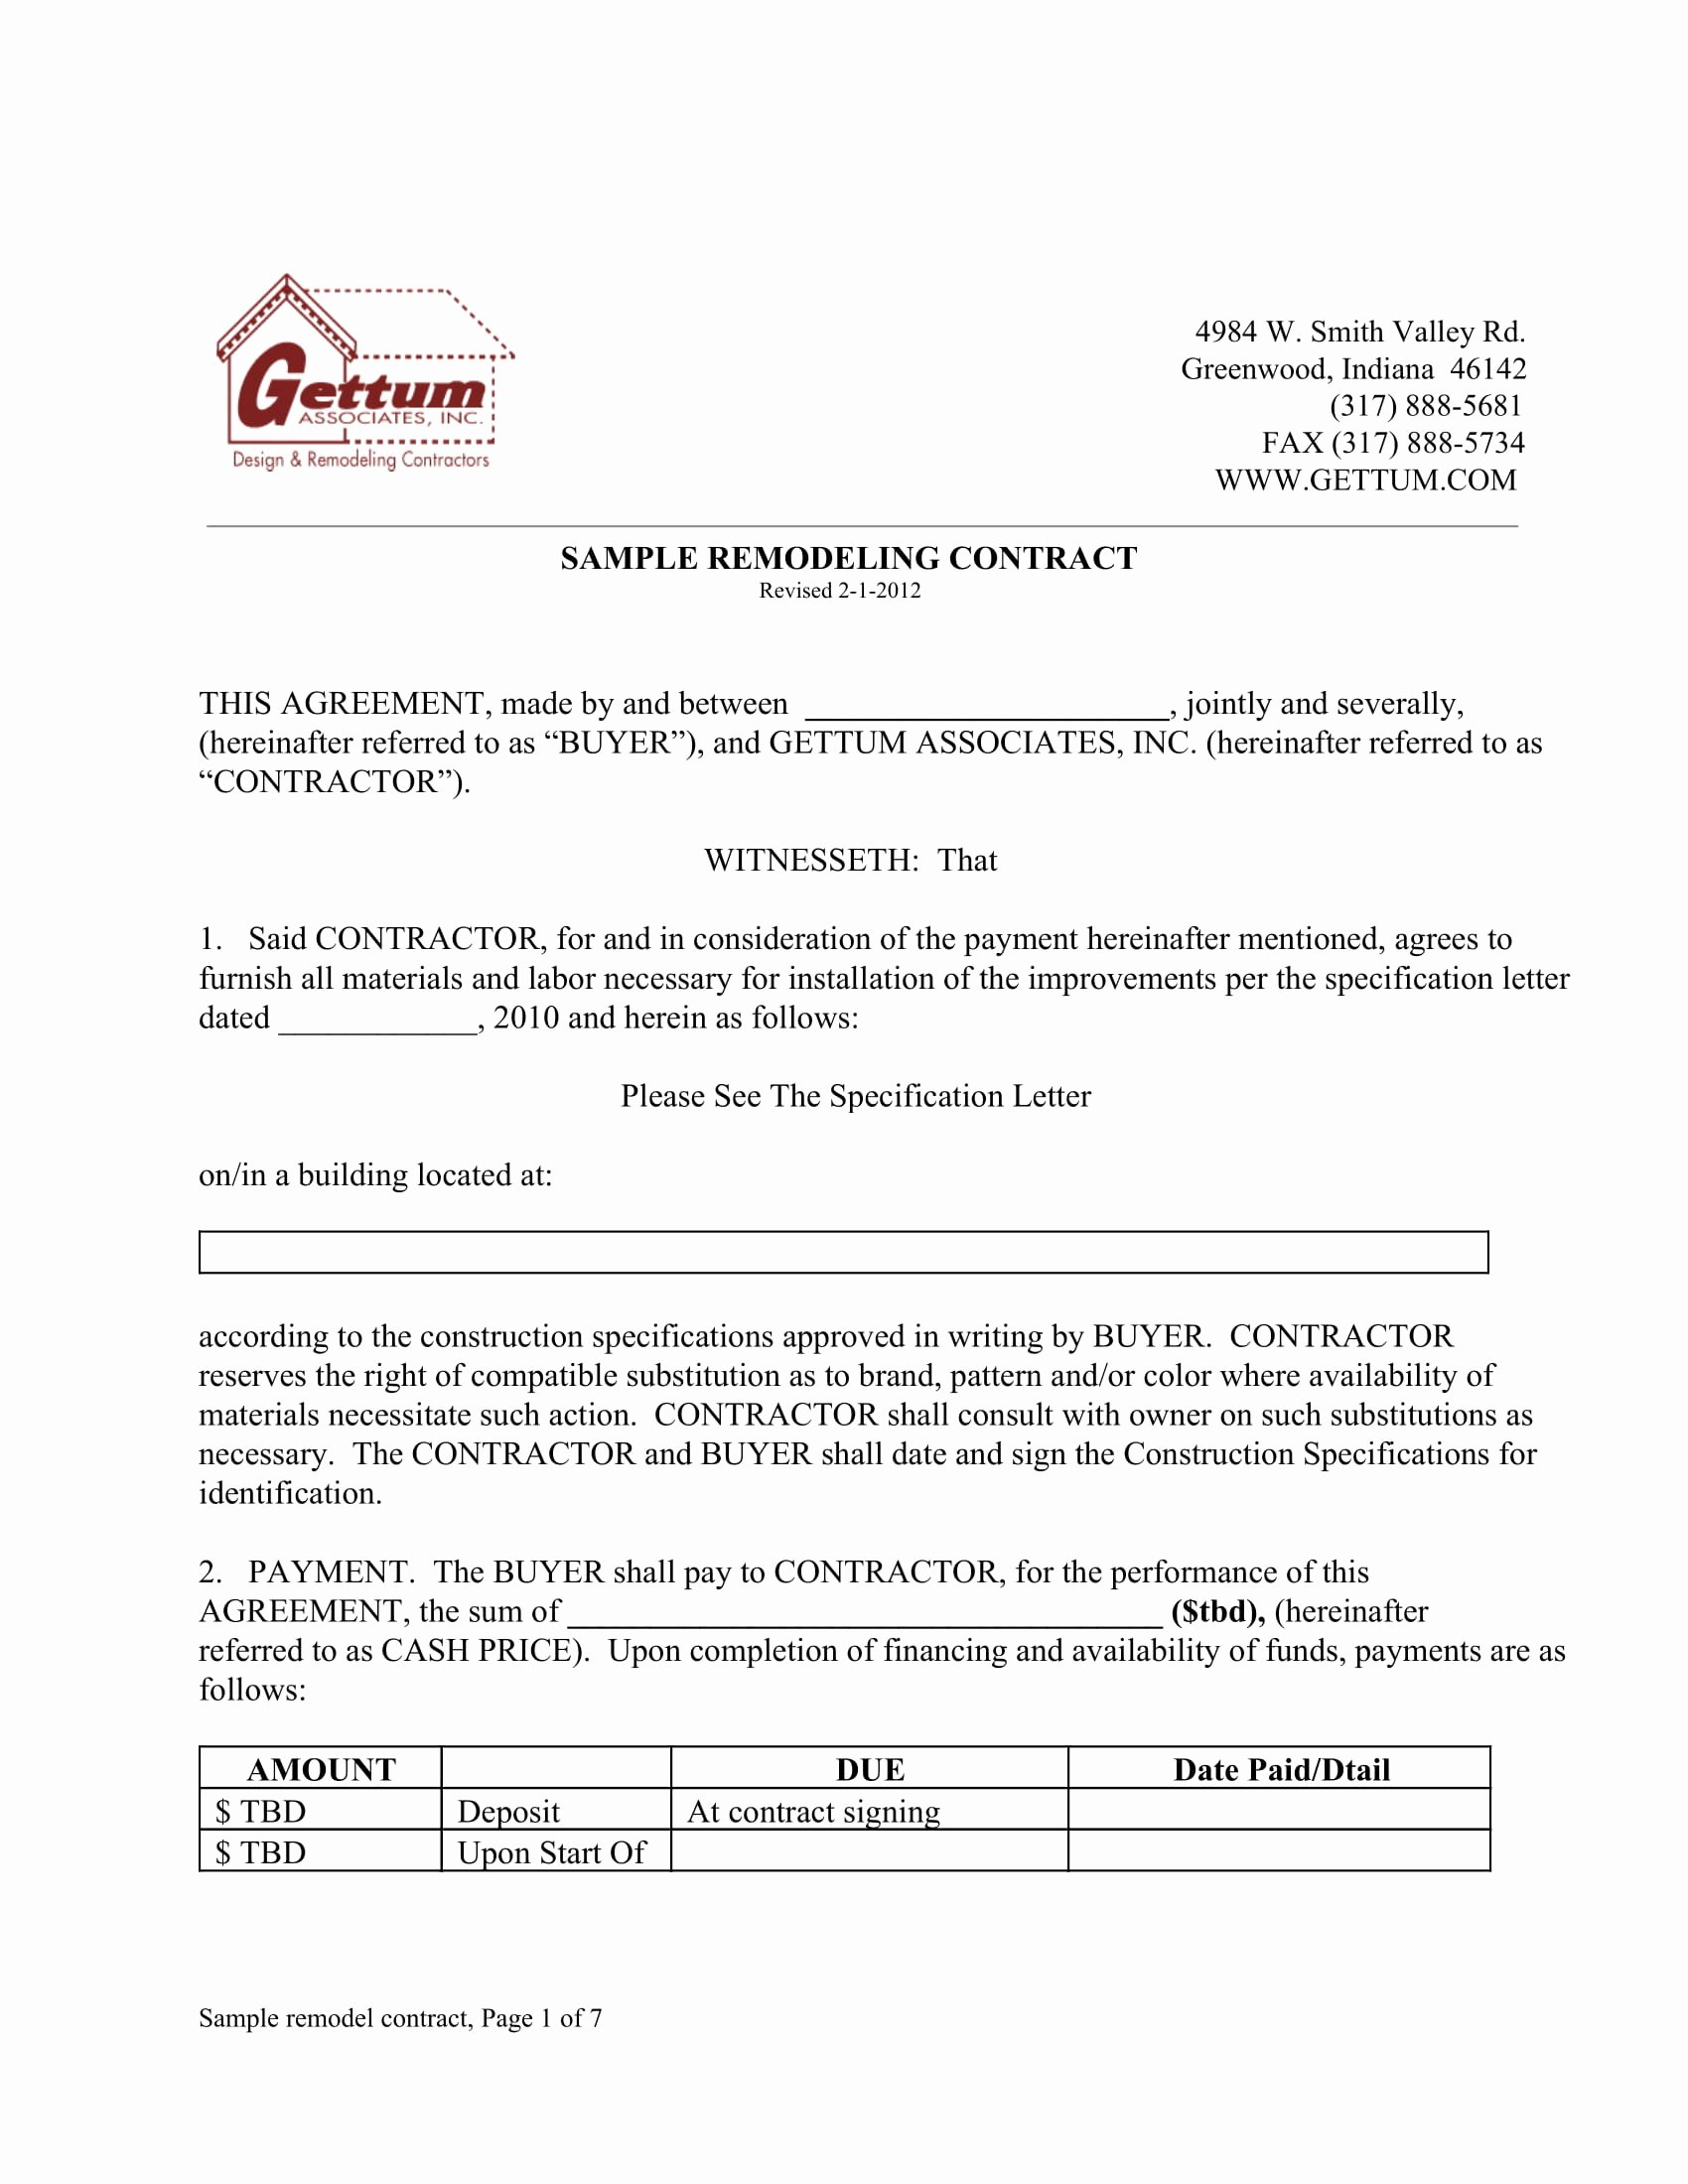 Home Remodeling Contract Template Awesome 9 Bathroom Renovation Contract Template Examples Pdf